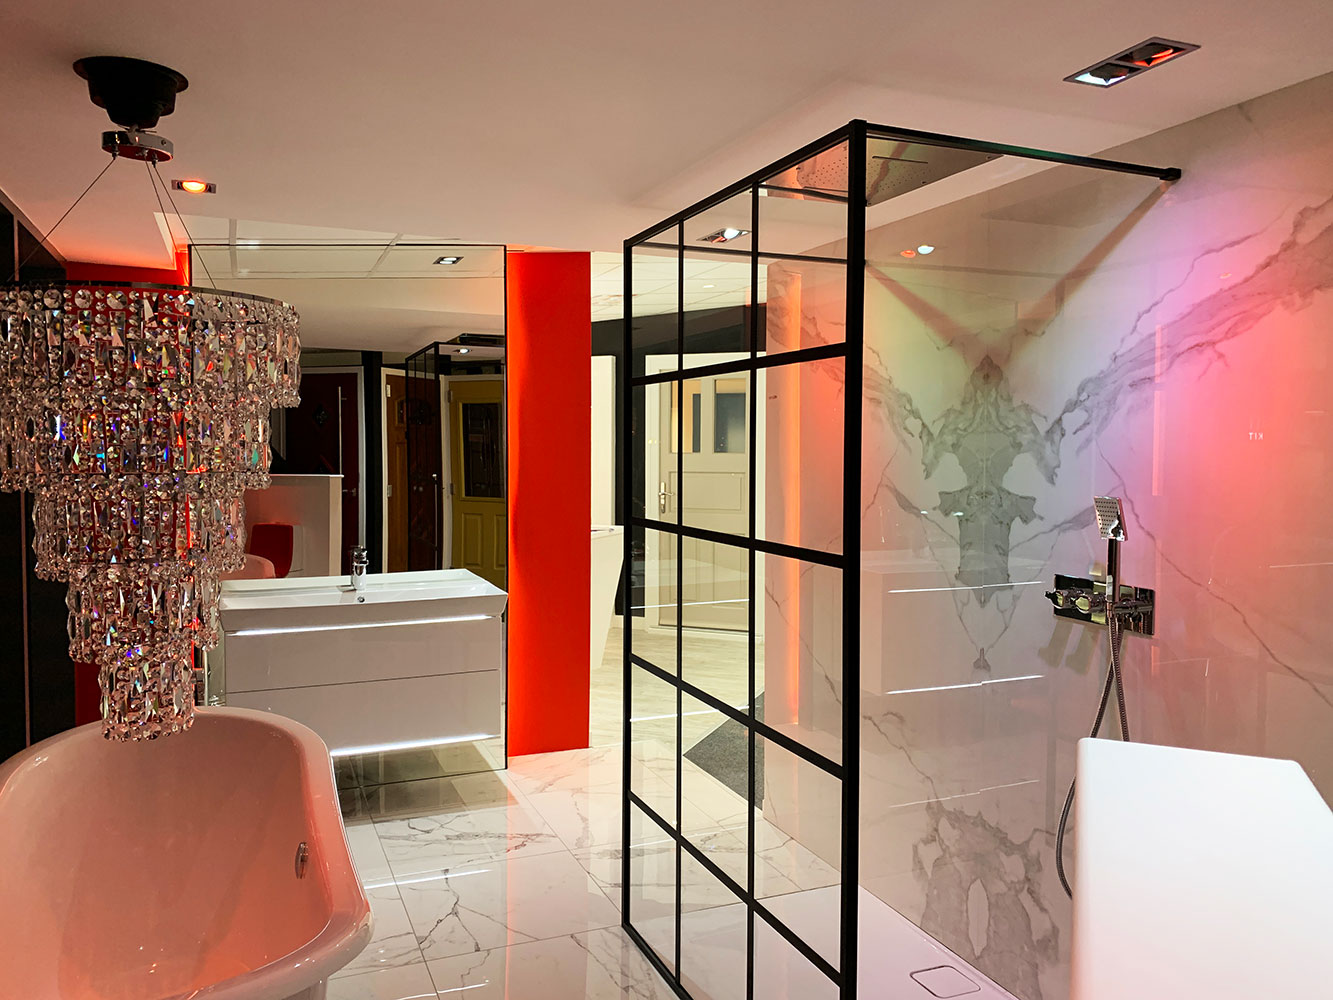 Thistle Bathroom Showroom Aberdeen: Bathroom Gallery 1, Photo 2